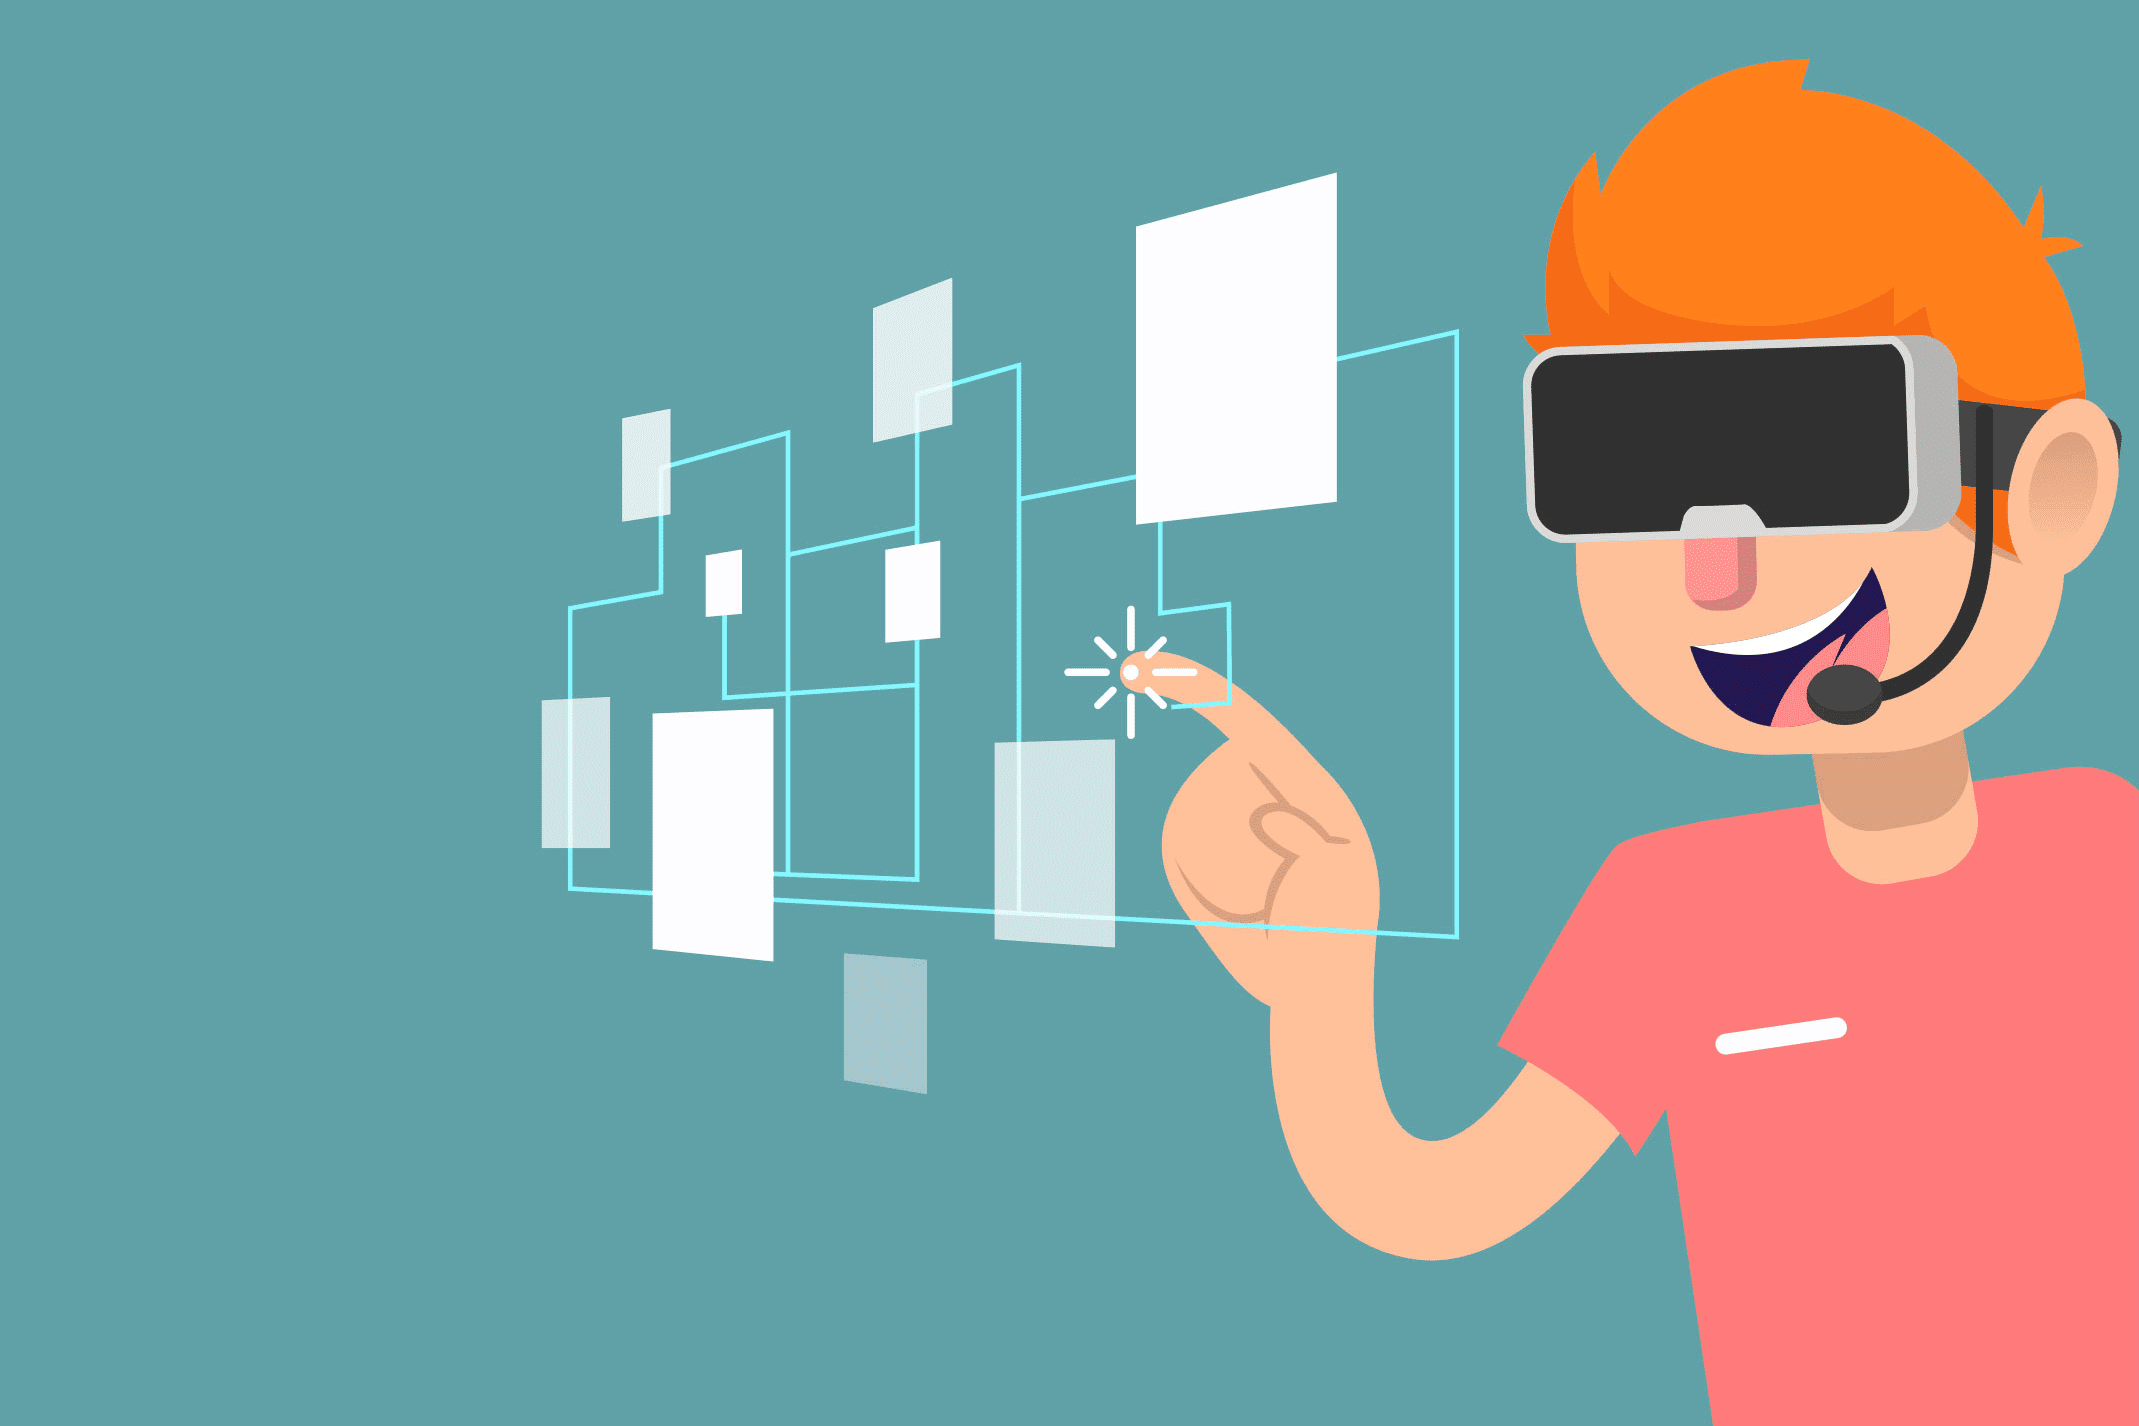 Illustration of a boy playing with augmented reality